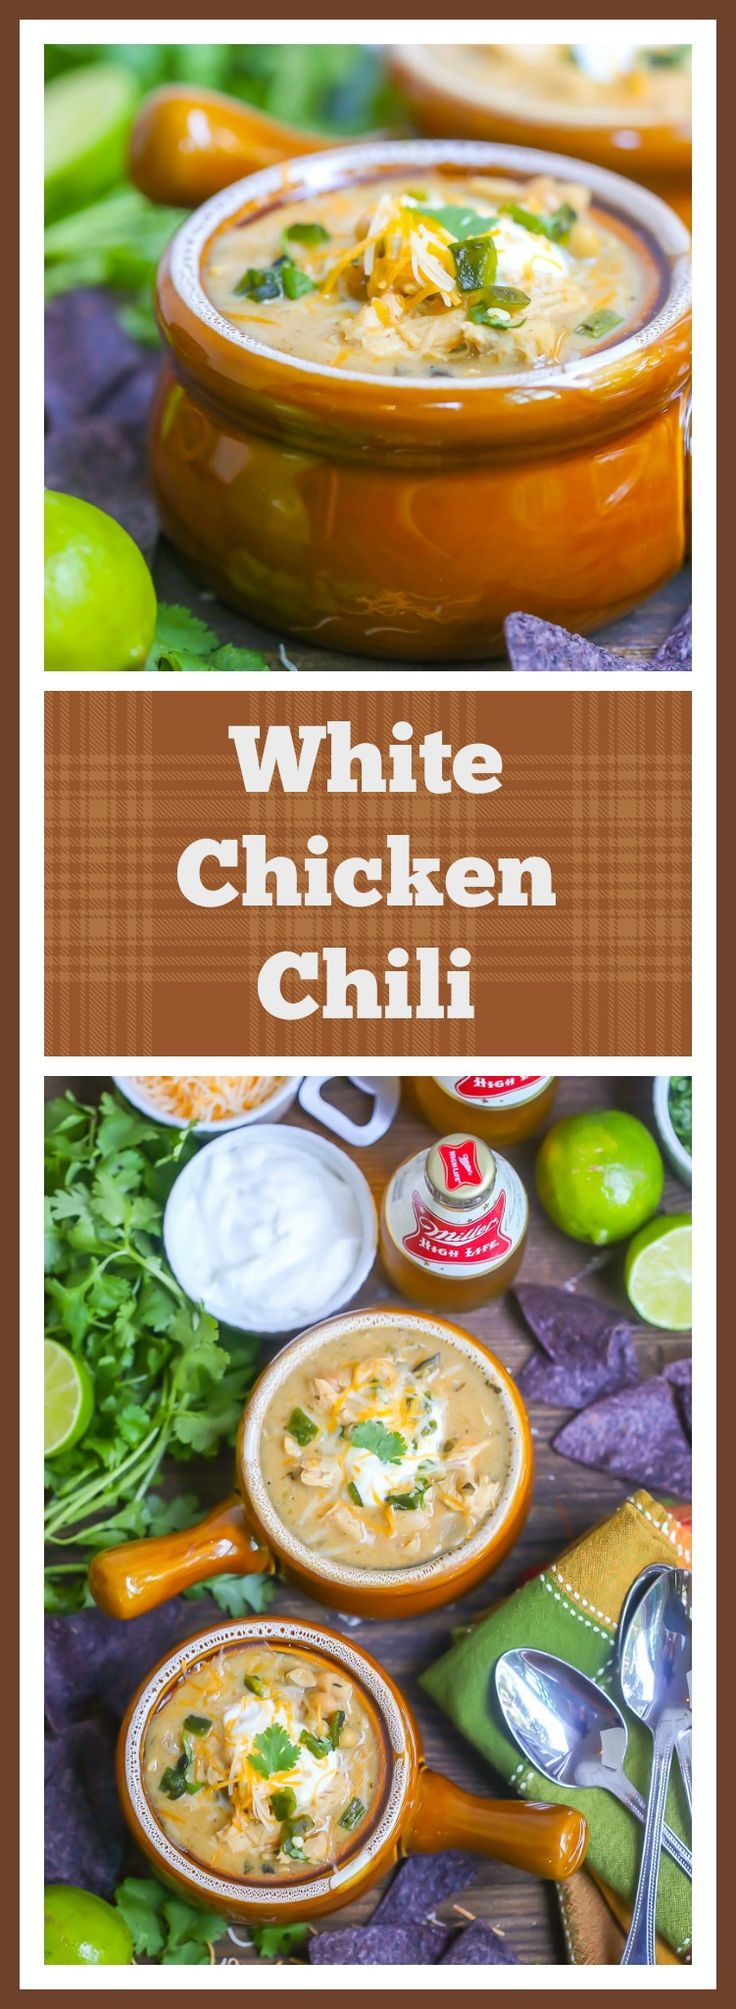 Creamy, tangy and with just the right amount of heat, this white chicken chili will become your tailgating staple.